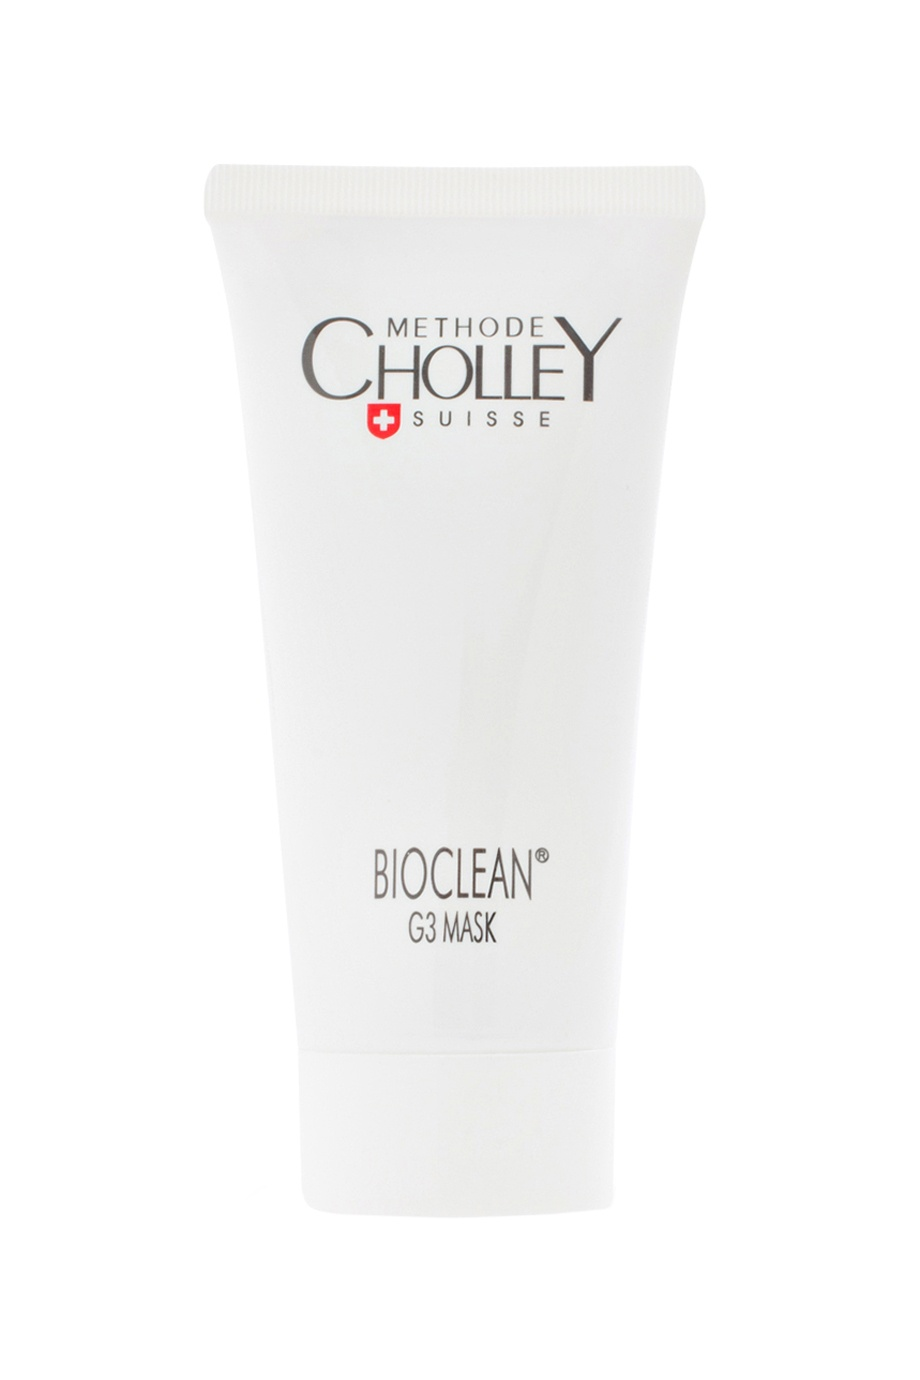 Очищающая маска для лица Bioclean G3 50ml Methode Cholley Suisse (фото)